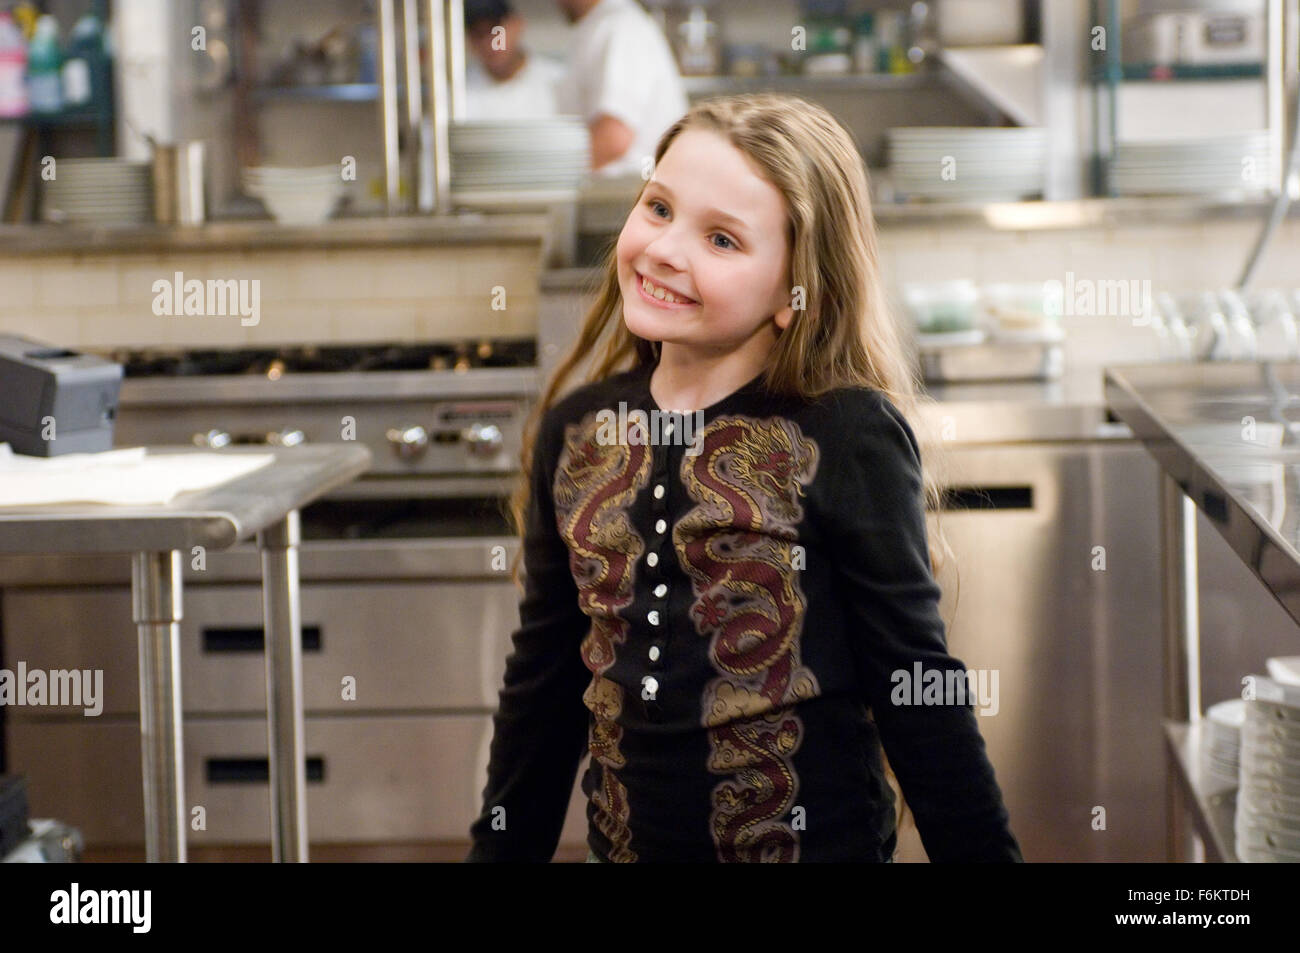 Release Date July 25 2007 Movie Title No Reservations Studio Castle Rock Entertainment Plot The Life Of A Top Chef Changes When She Becomes The Guardian Of Her Young Niece Pictured Abigail